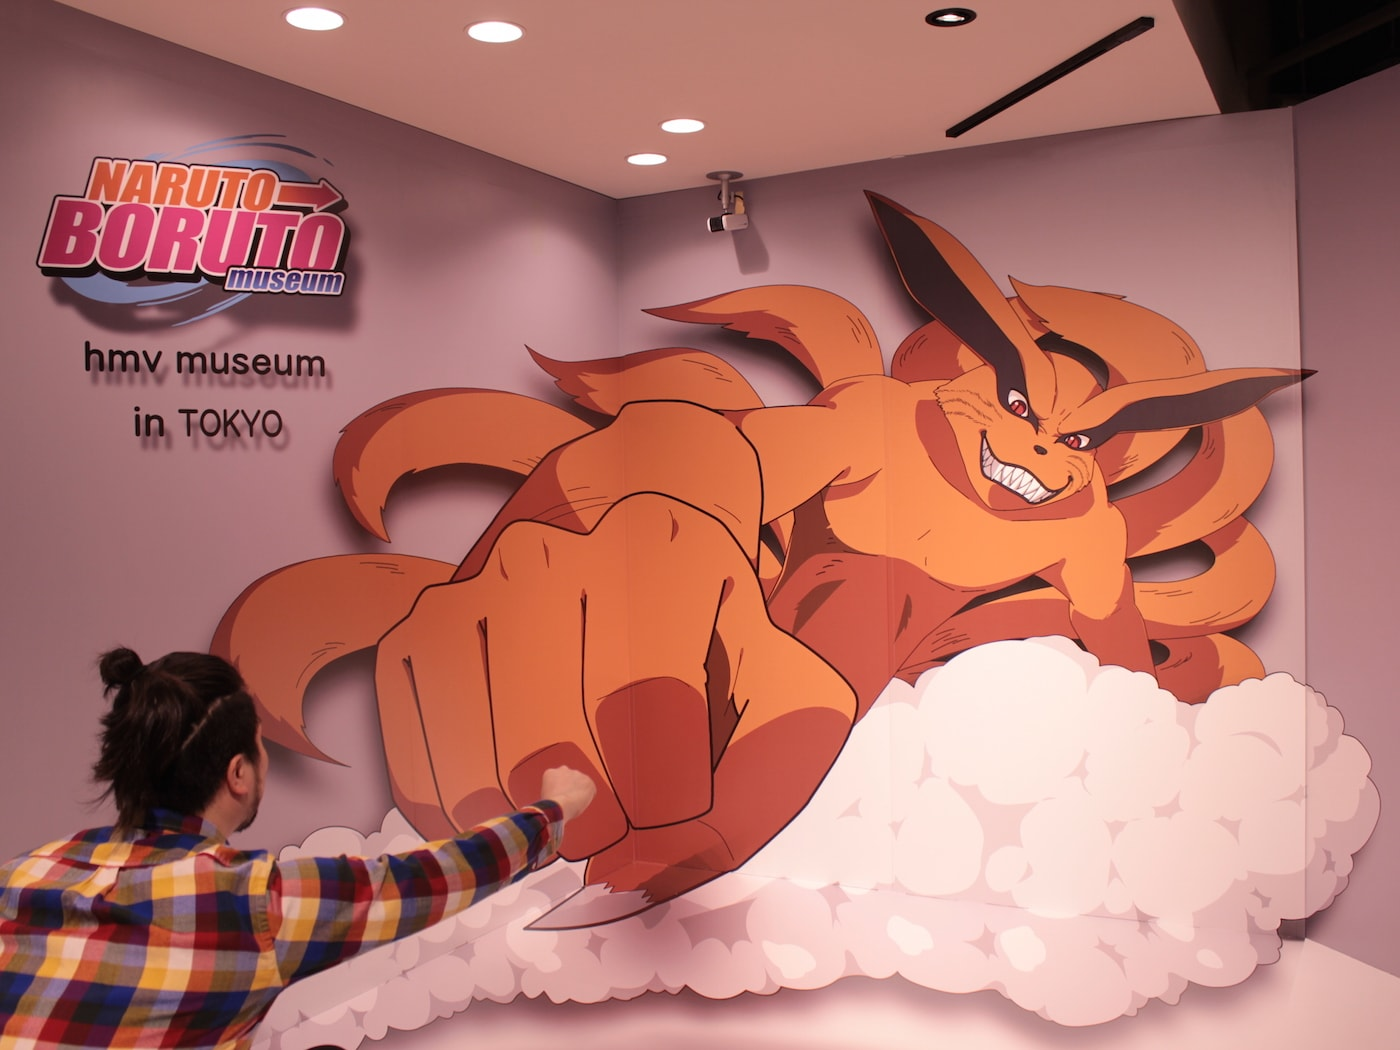 ARUTO⇒BORUTO Museum Report: An Exhibition About the History of Naruto and Boruto |